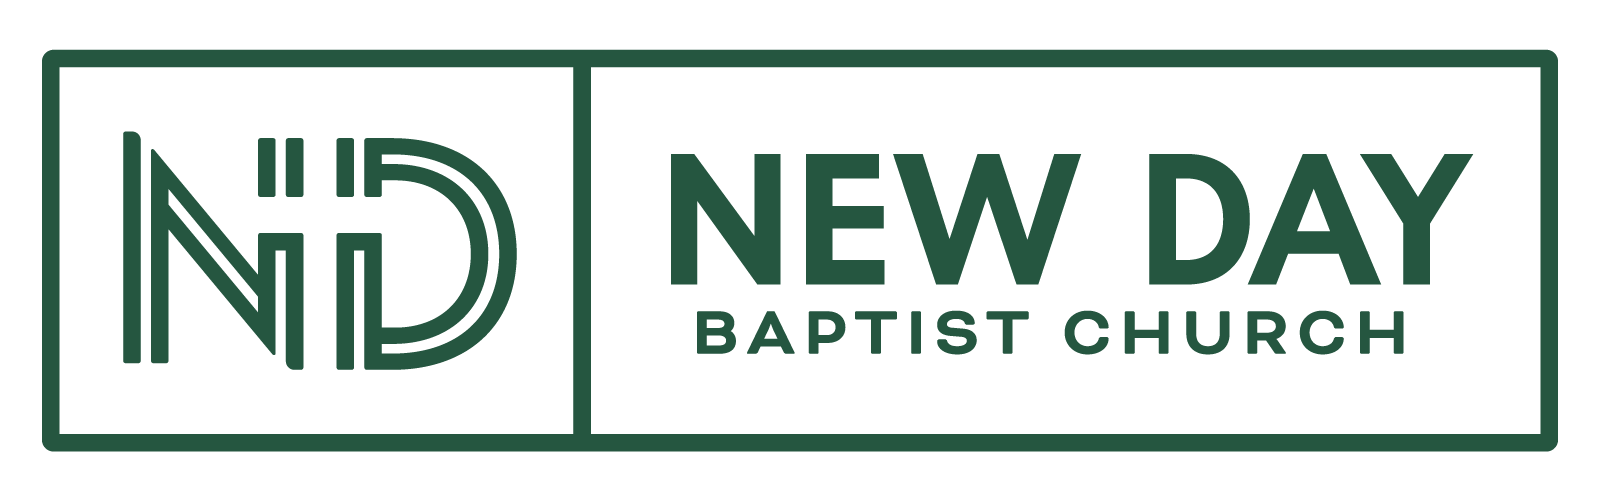 New Day Baptist